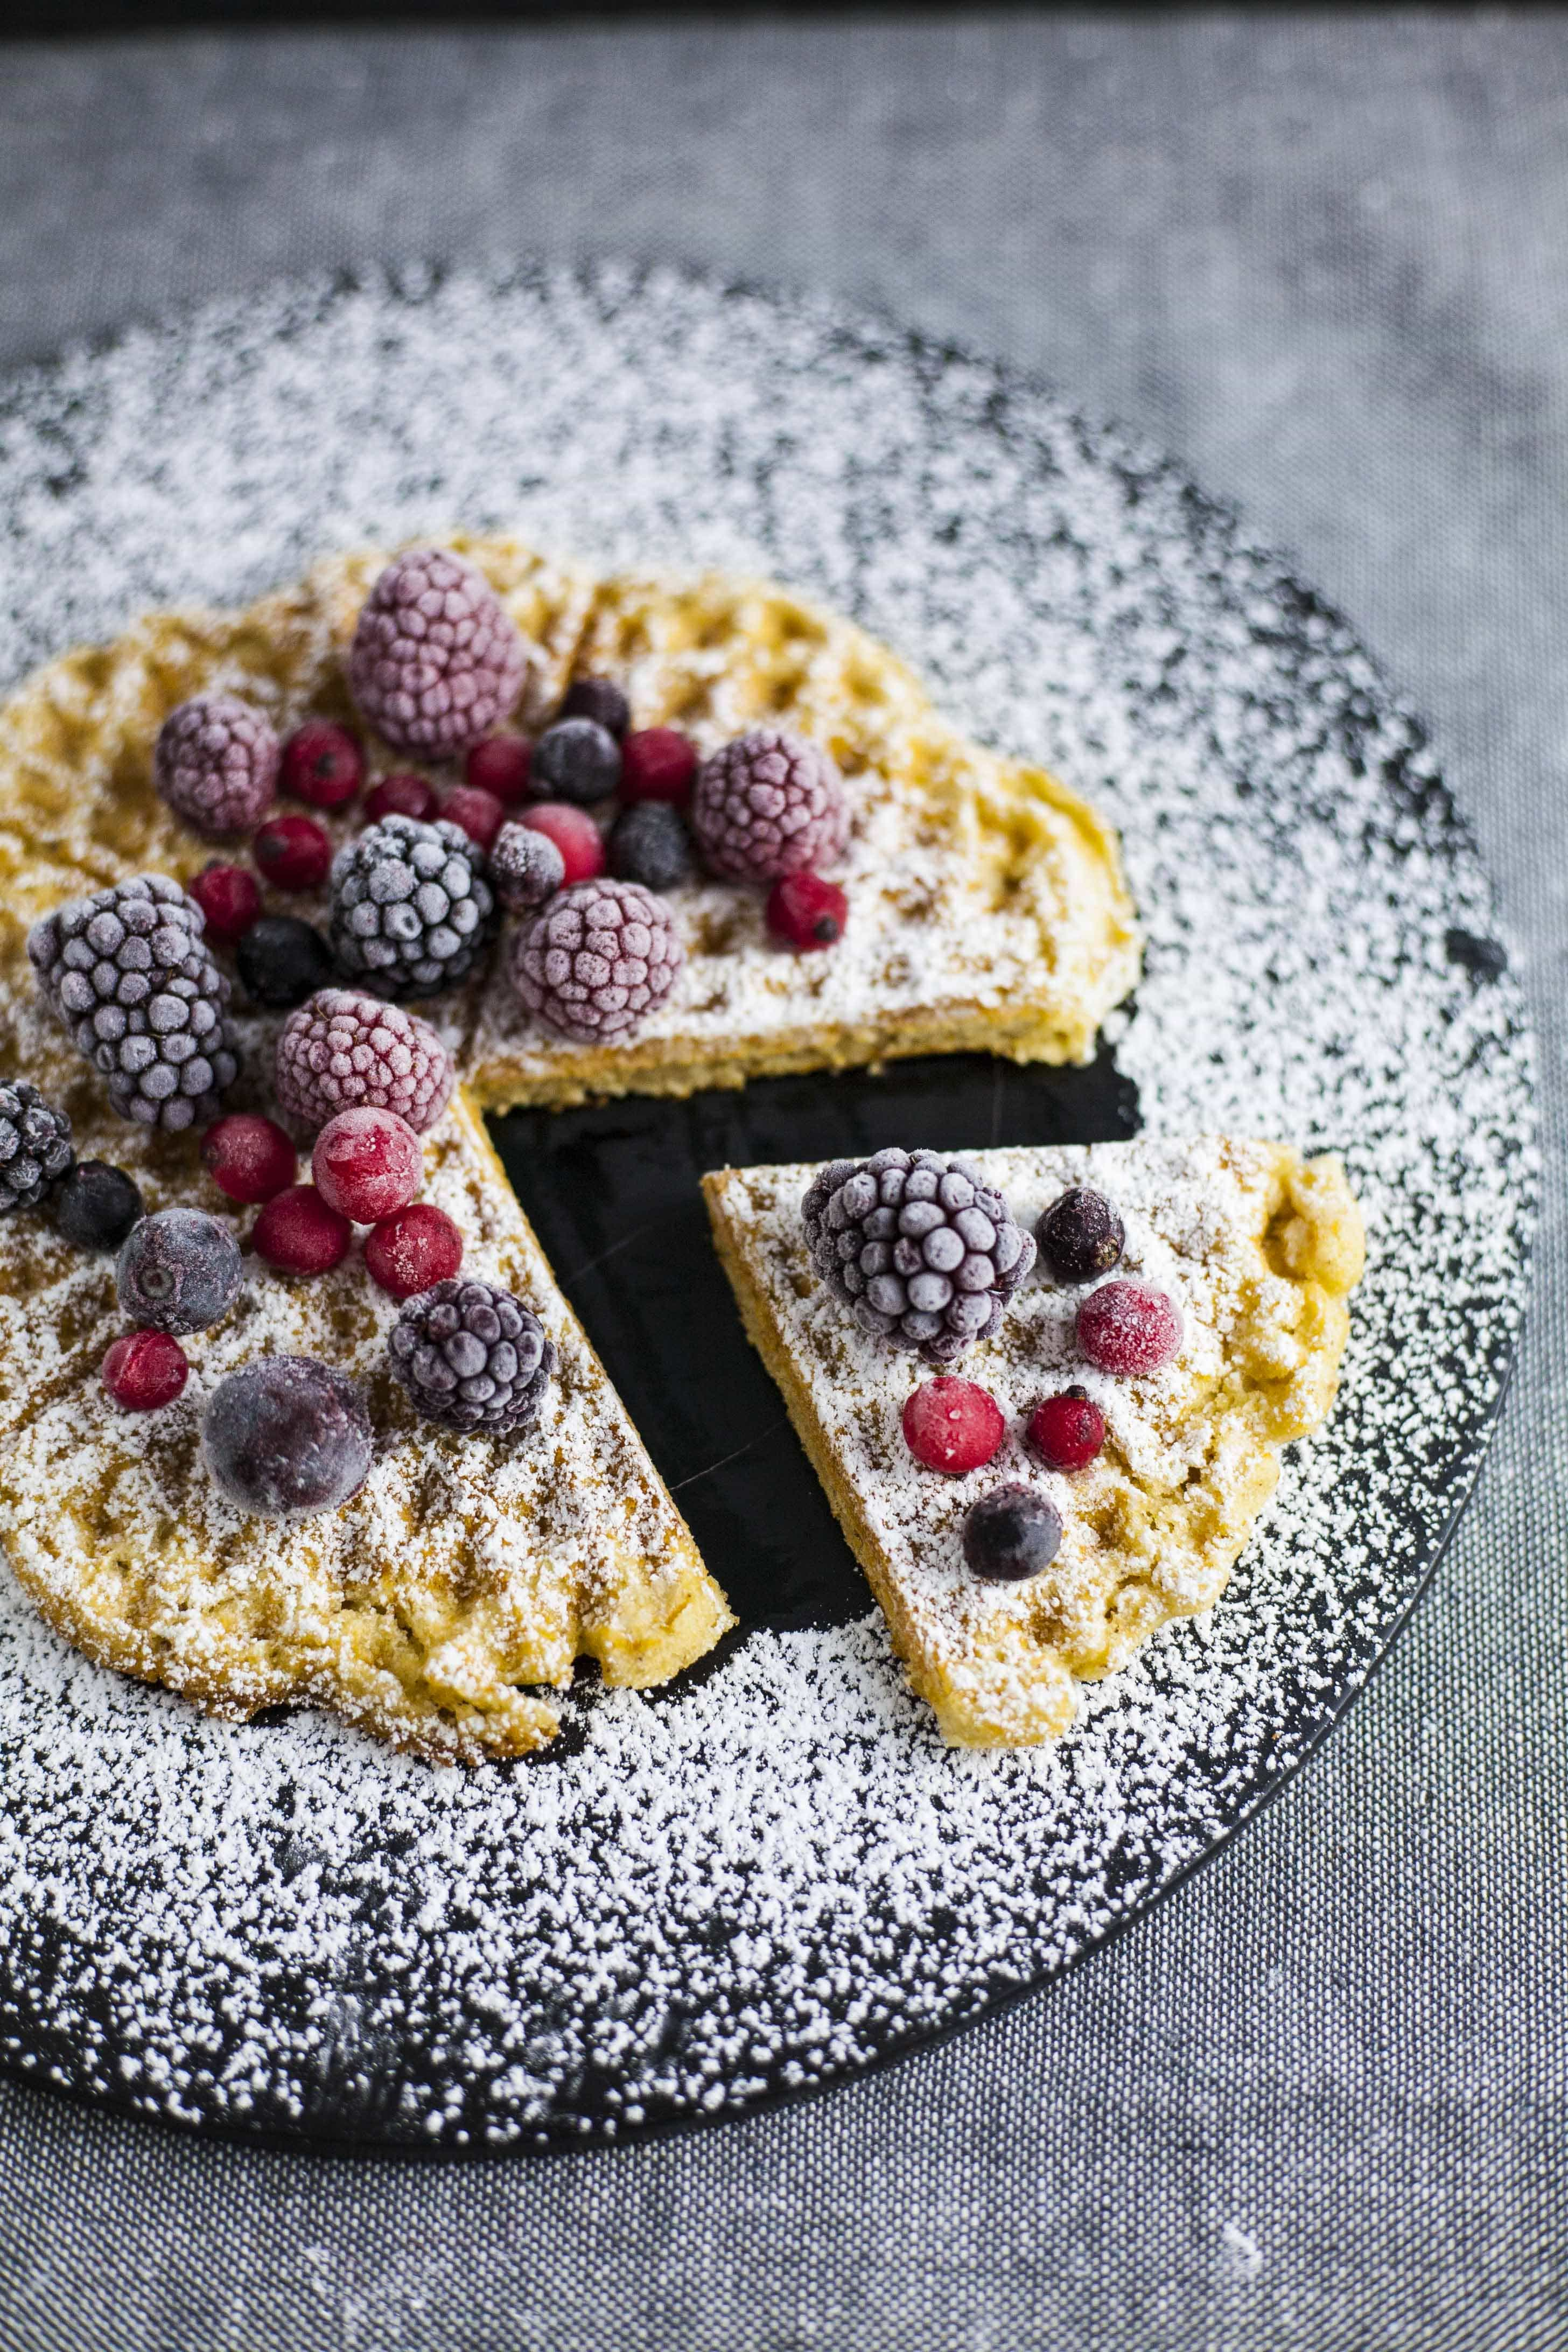 Crispy vegan waffle made in five-of-hearts waffle iron. Topped with berries and powdered sugar.